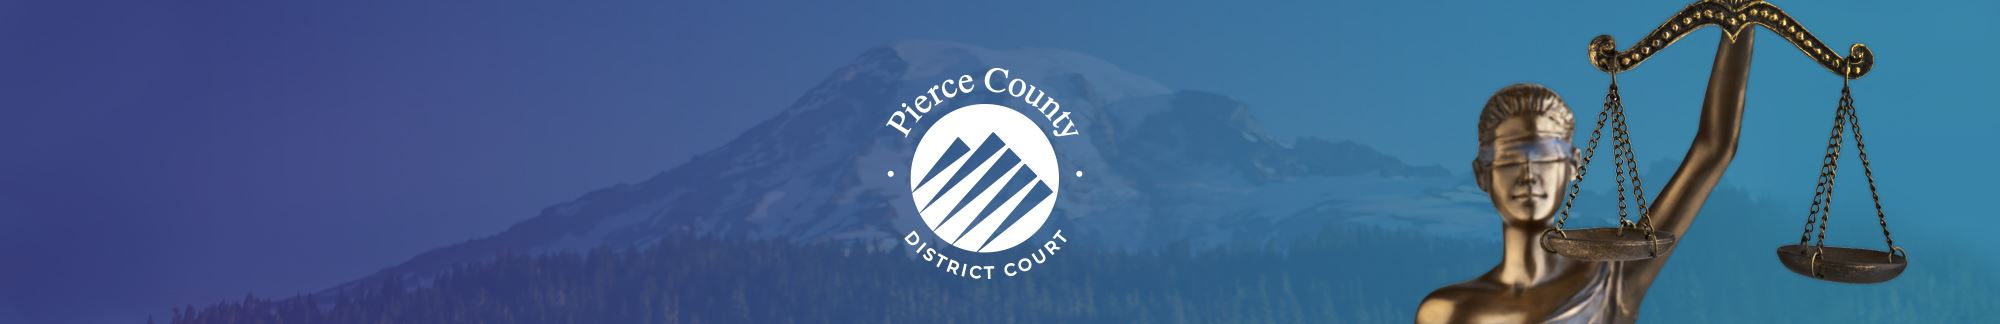 Pierce County District Court